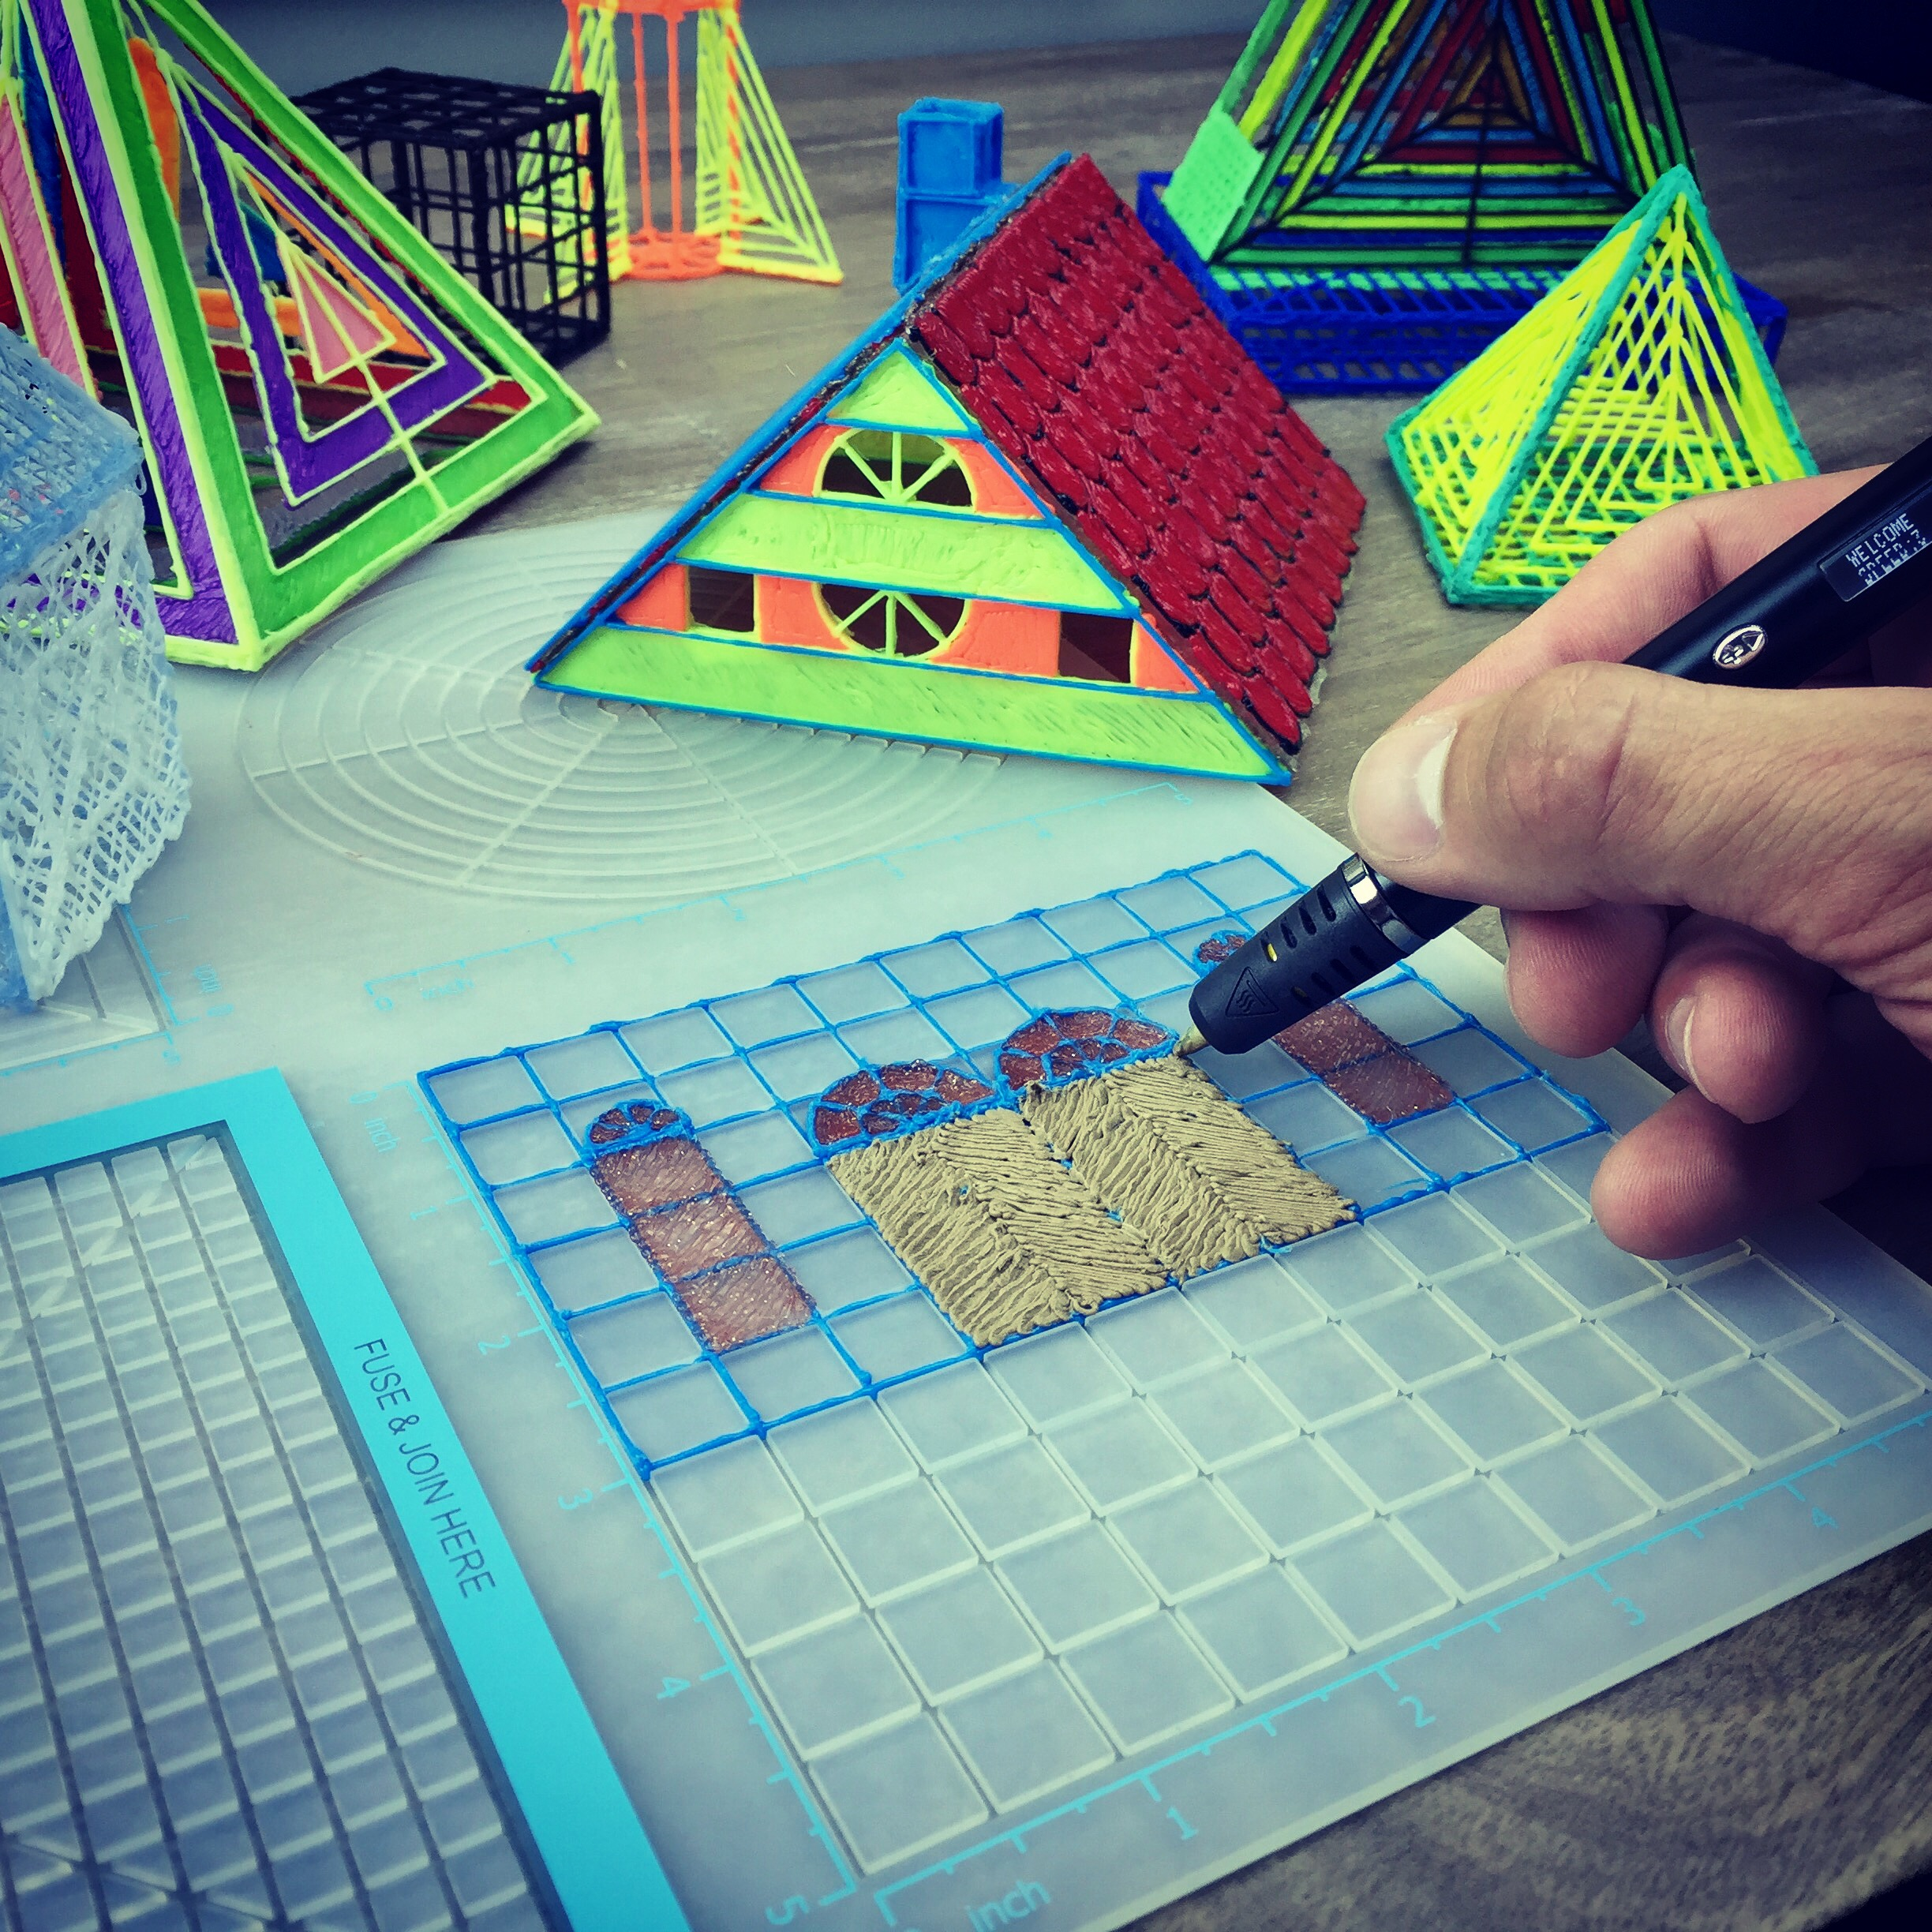 New Design Mat To Revolutionize The Way We Use 3D Printing